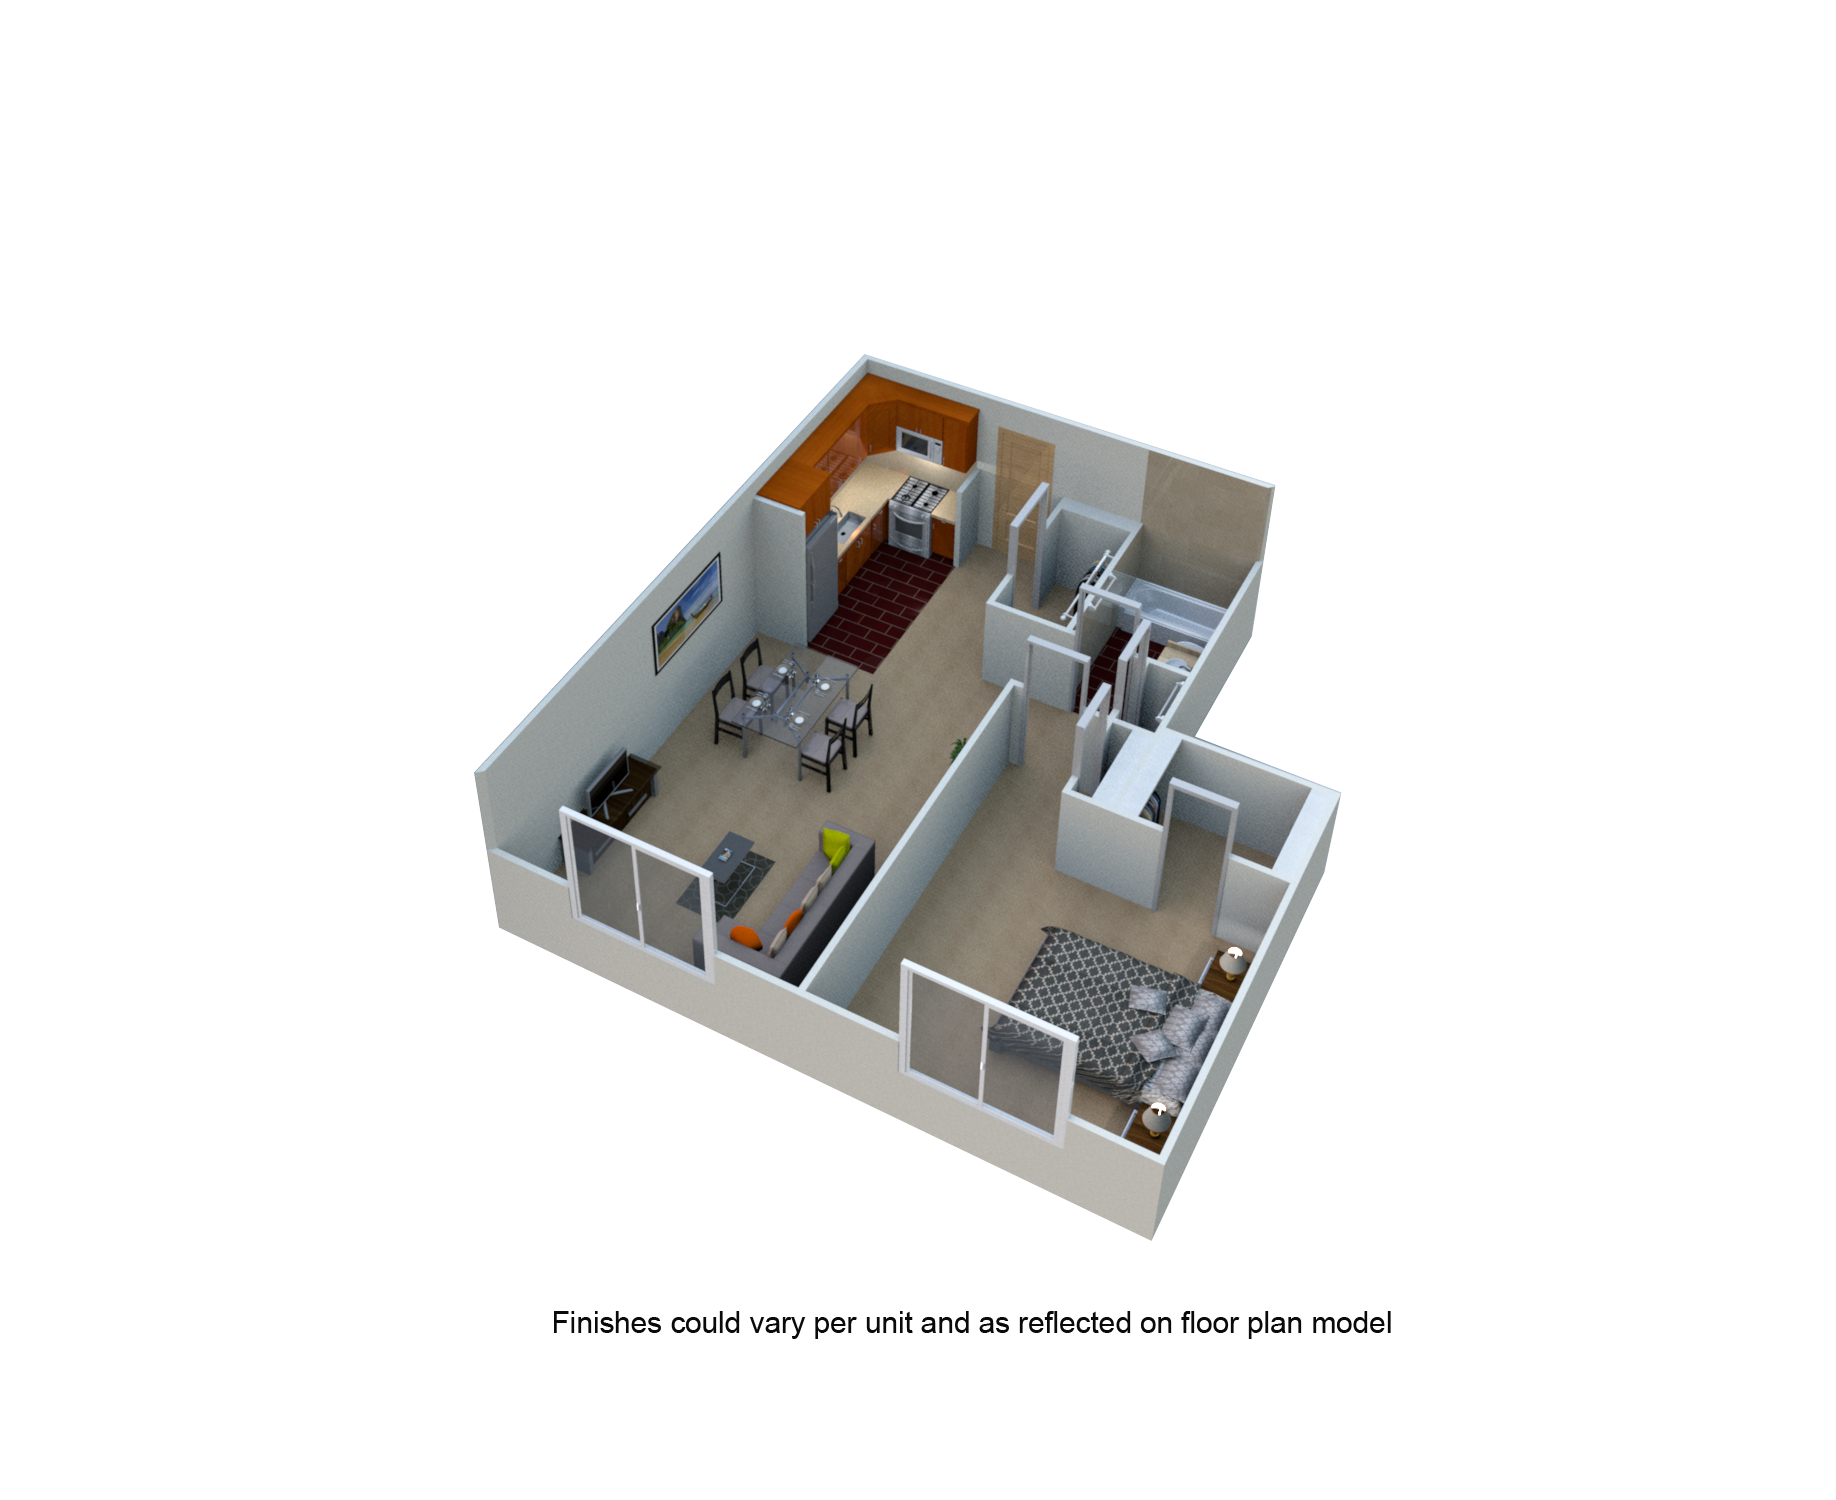 1 Bed 1 bath One Bedroom Eco Floor Plan at The Blairs, Silver Spring